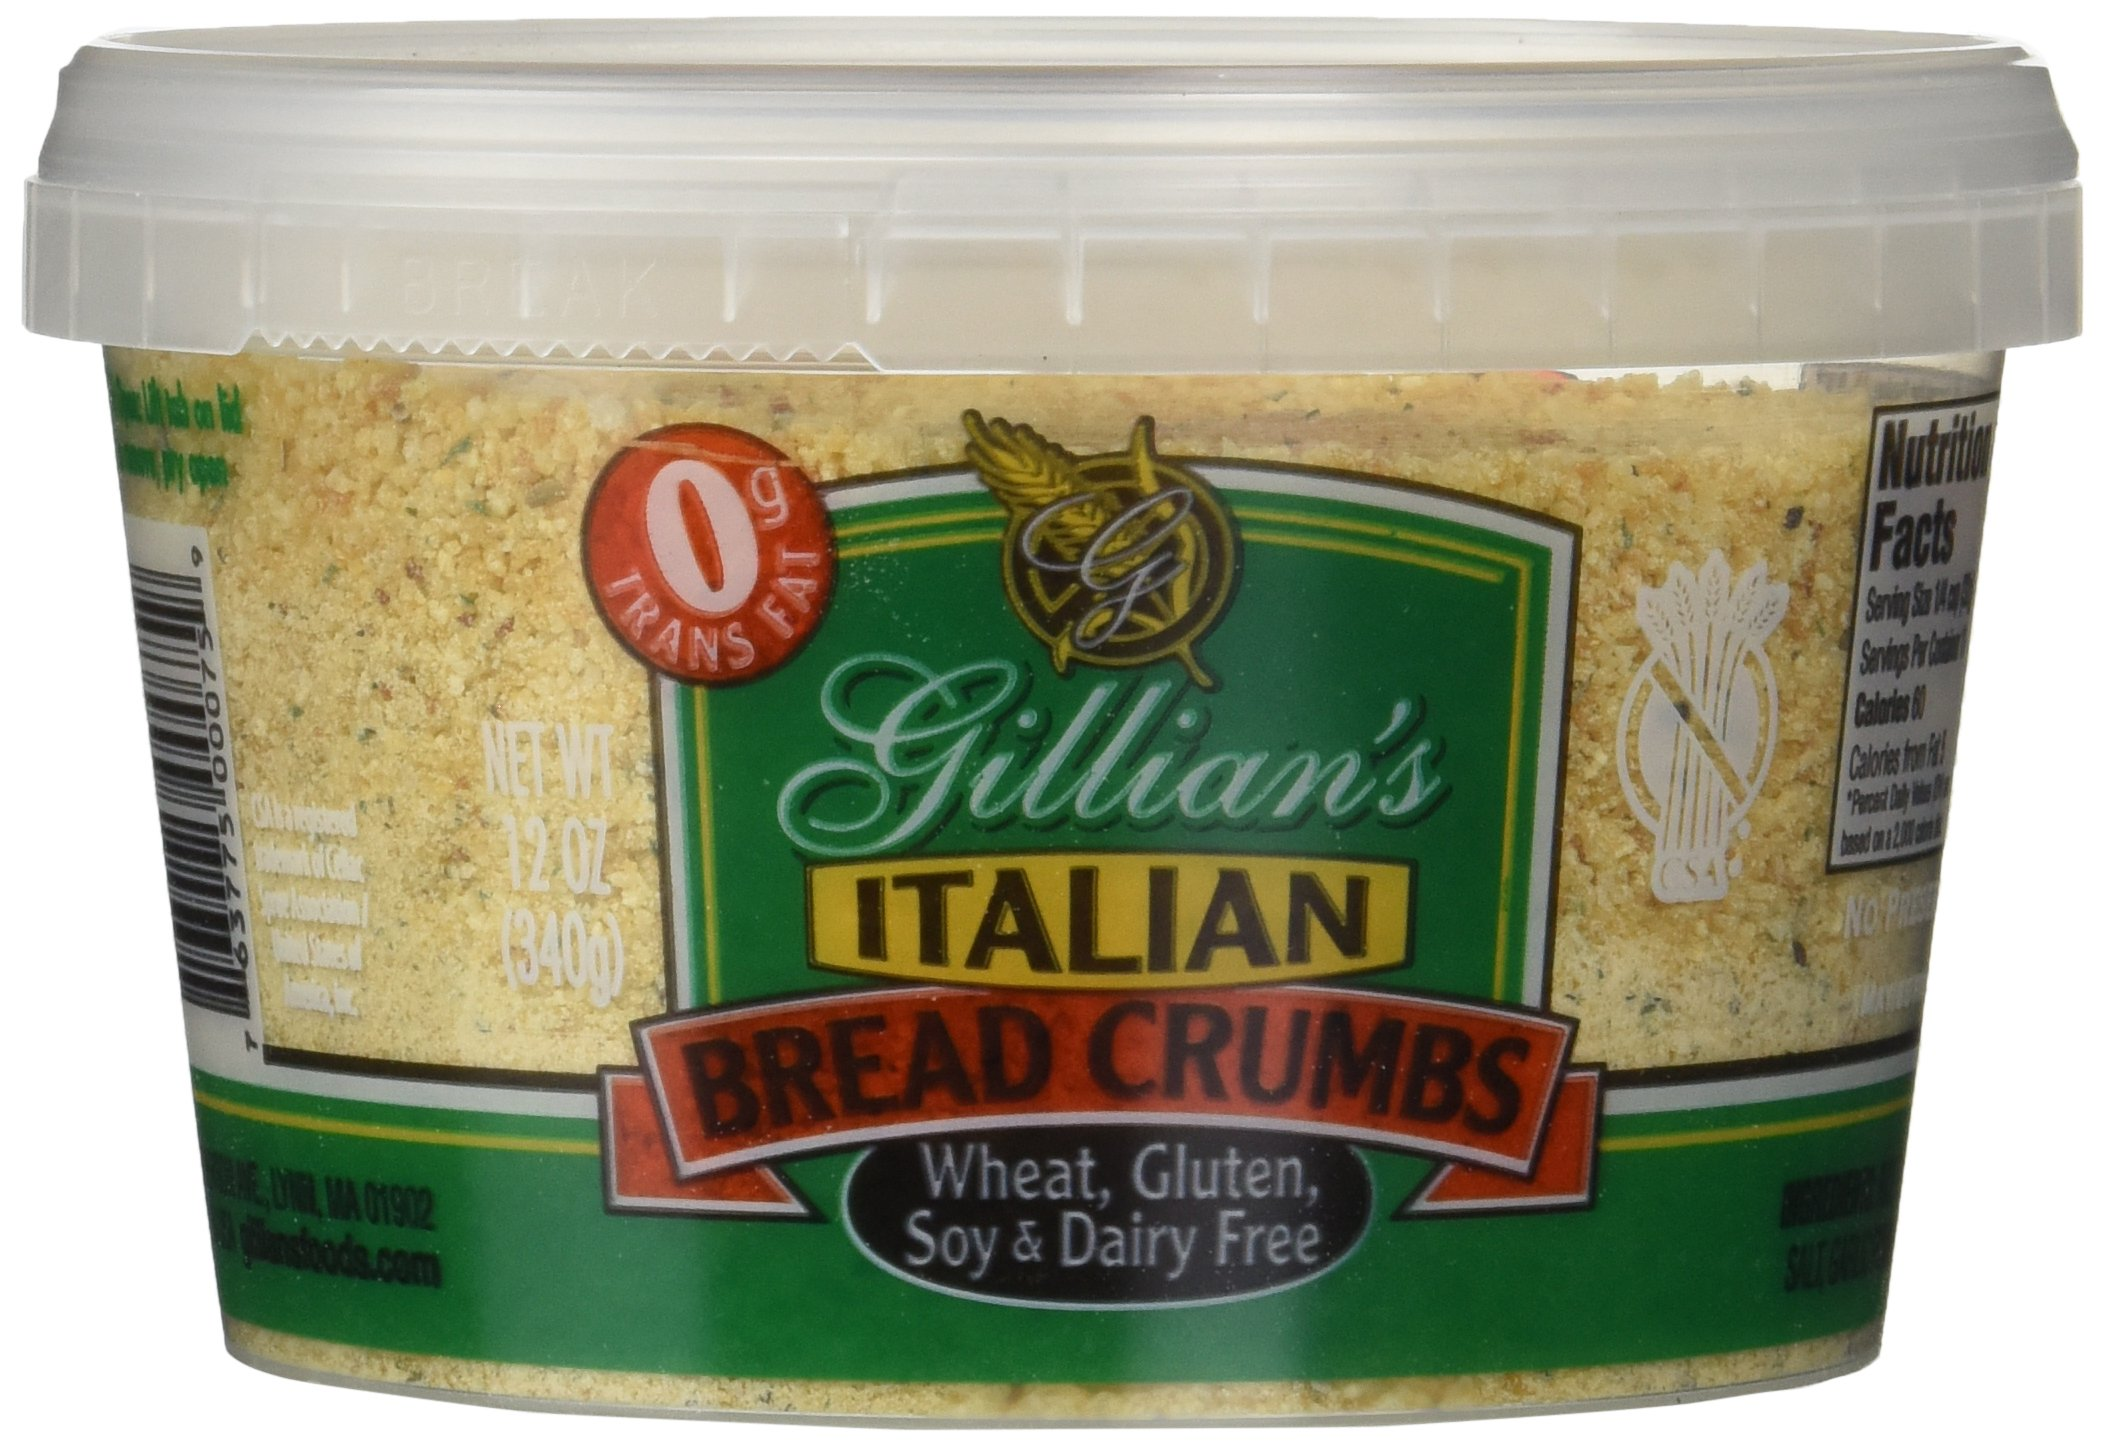 Gillian's Foods Gluten Free Italian Bread Crumbs -- 12 oz by Gillian's Foods